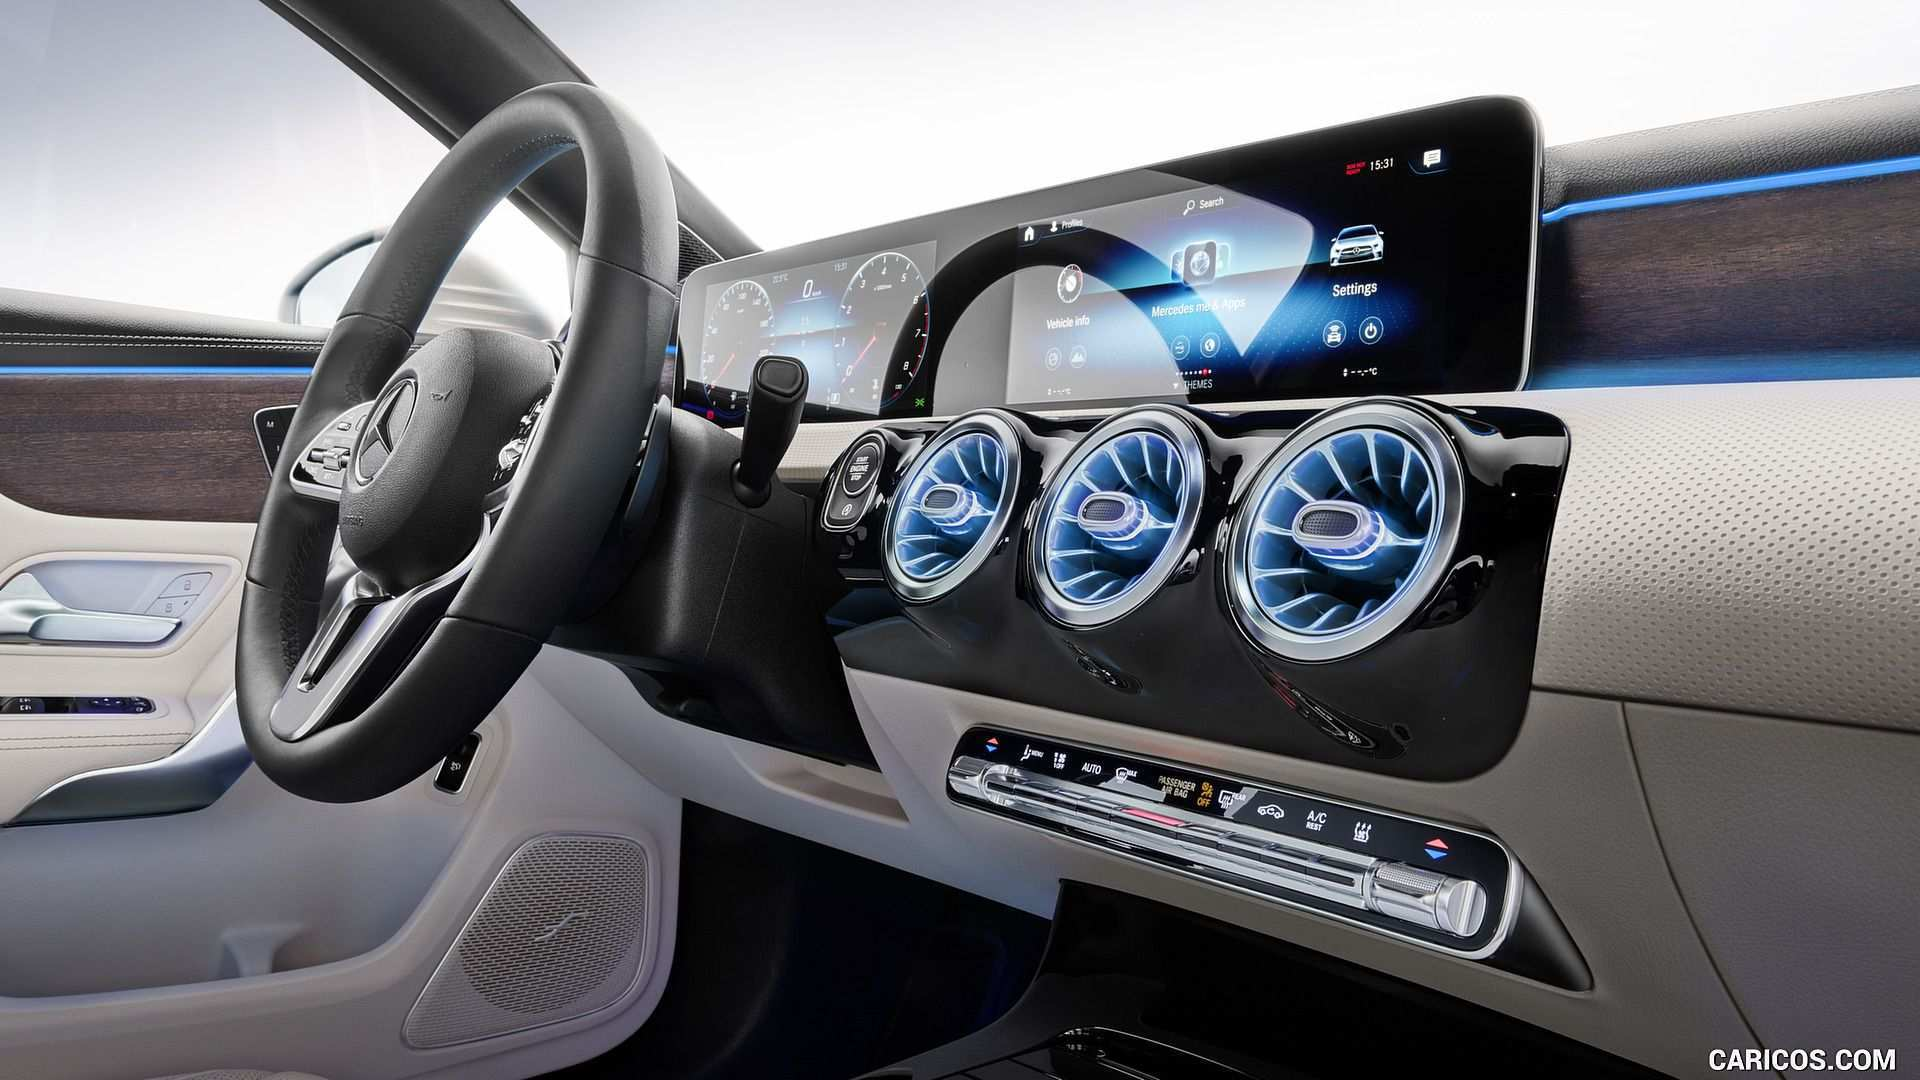 23 The Best Mercedes A Class 2019 Interior Images